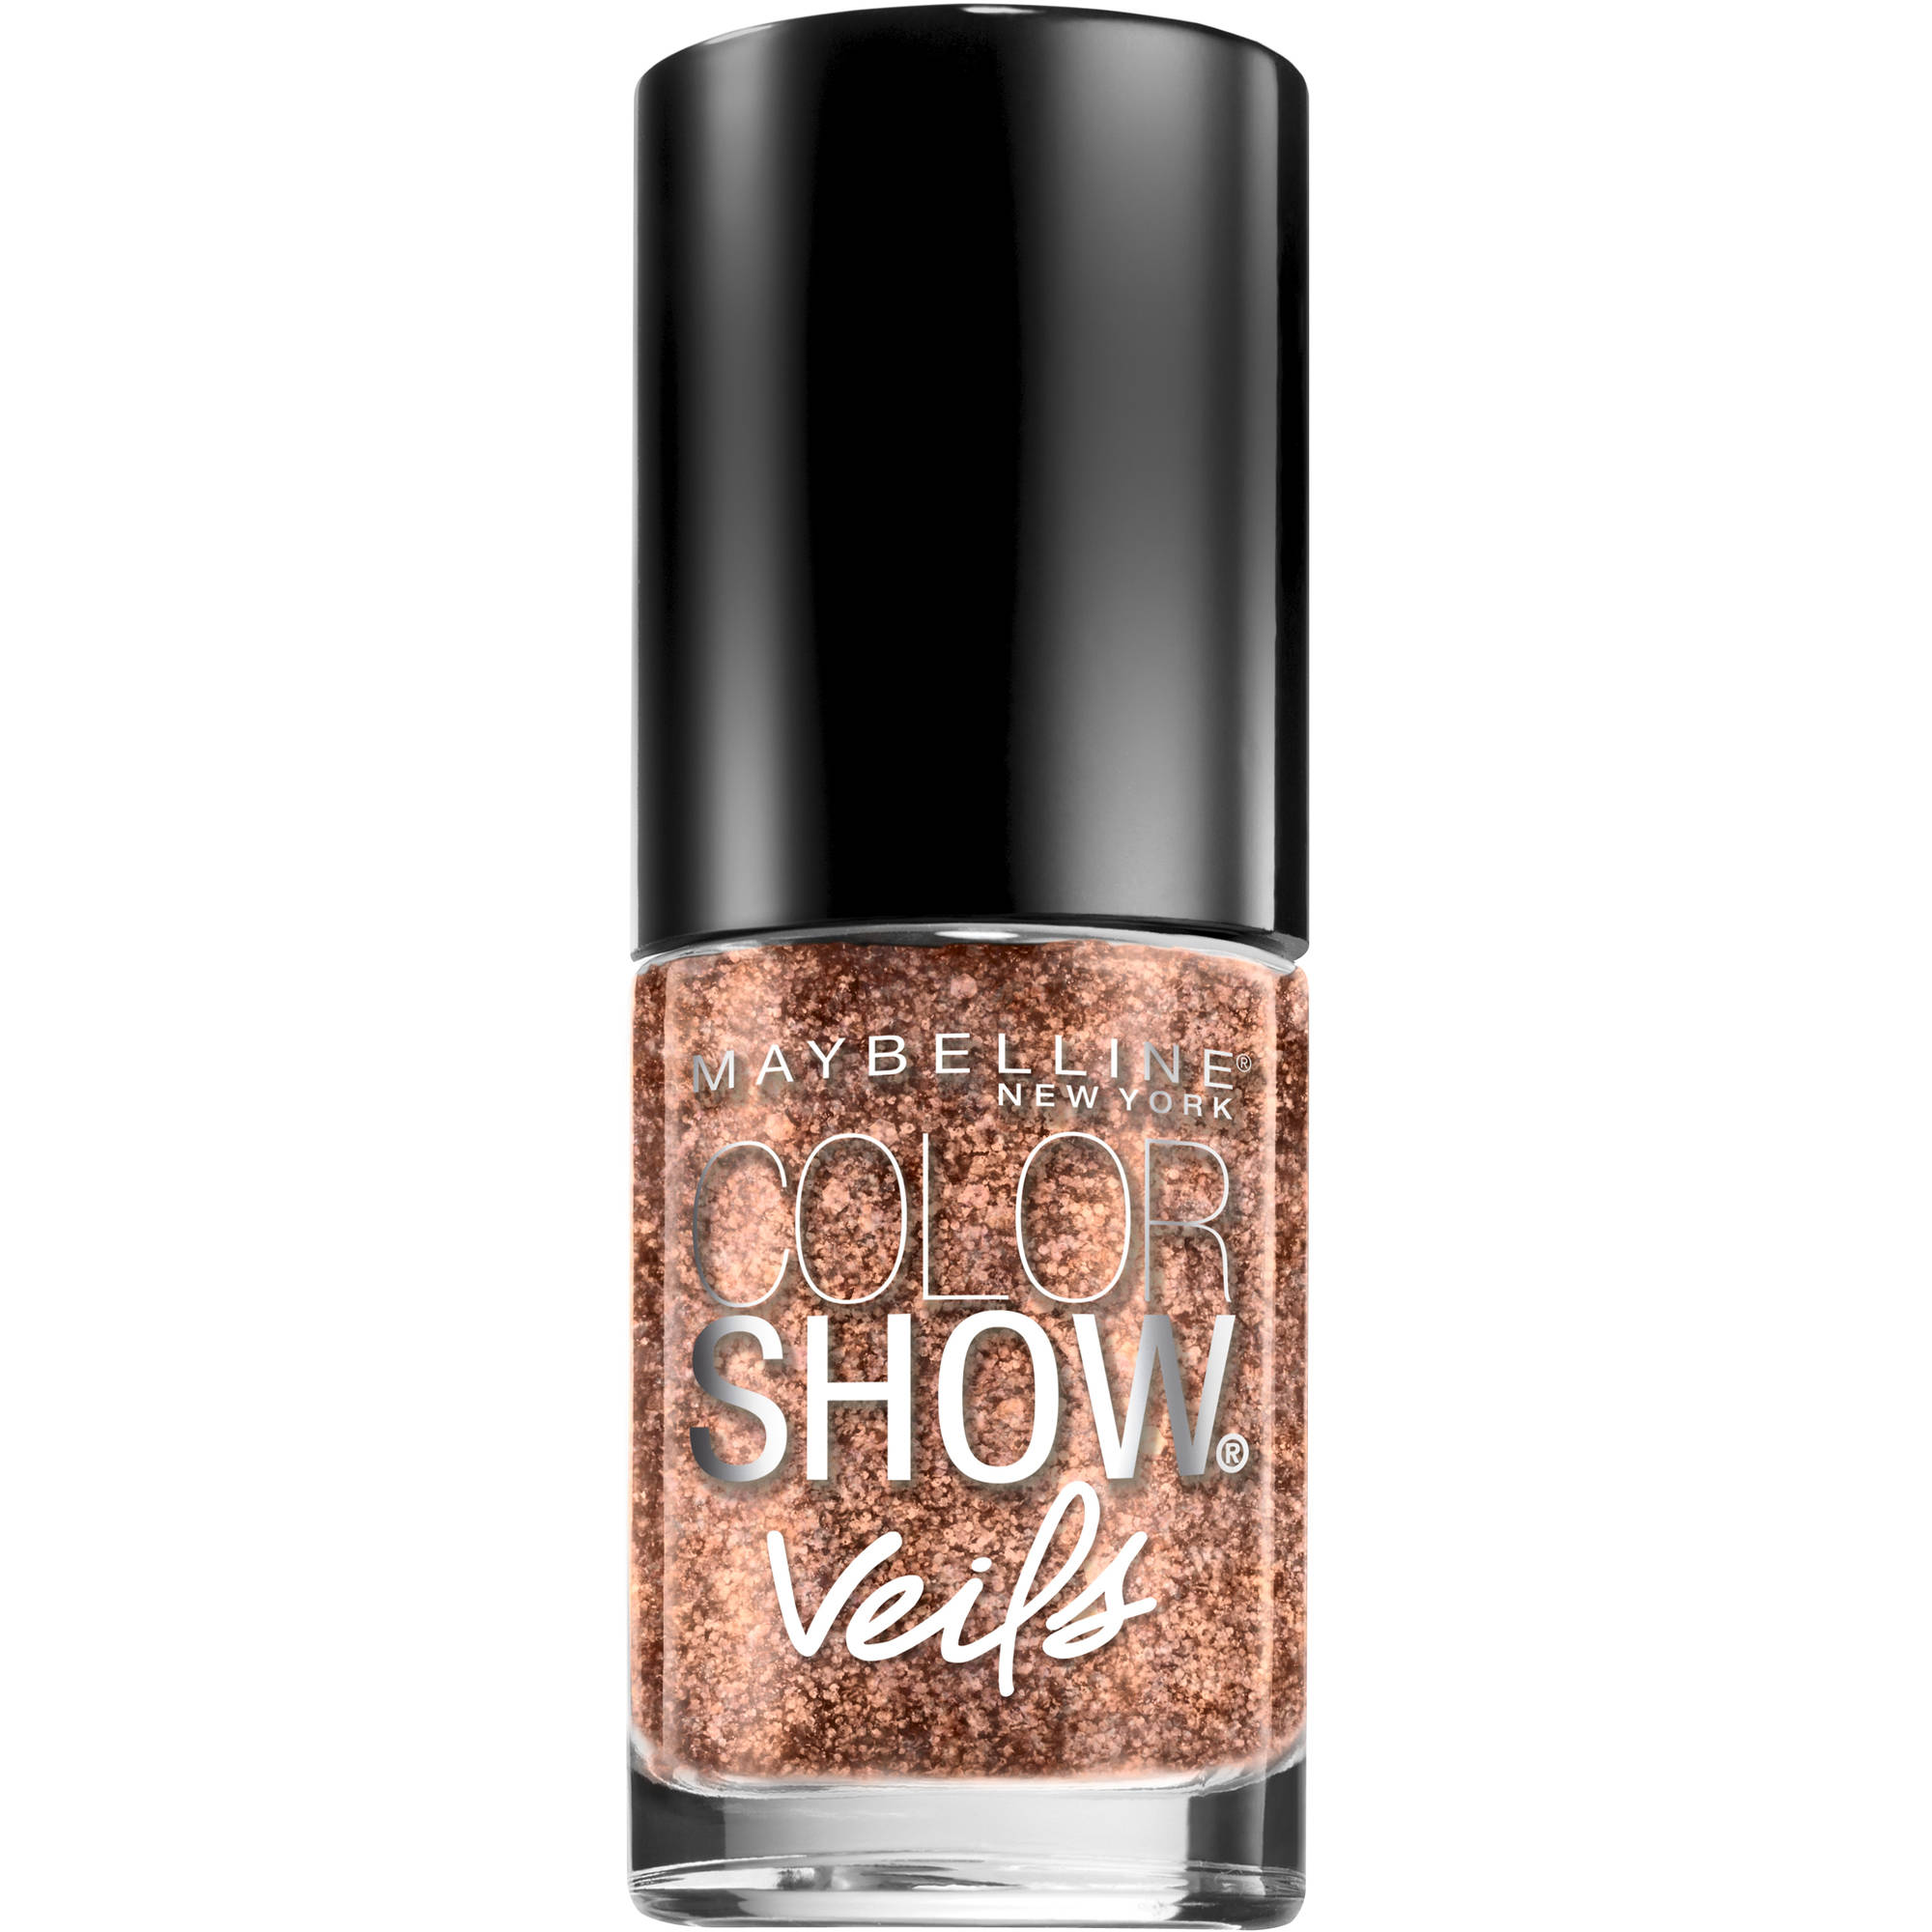 Maybelline New York Color Show Veils Nail Lacquer Top Coat, Rose ...